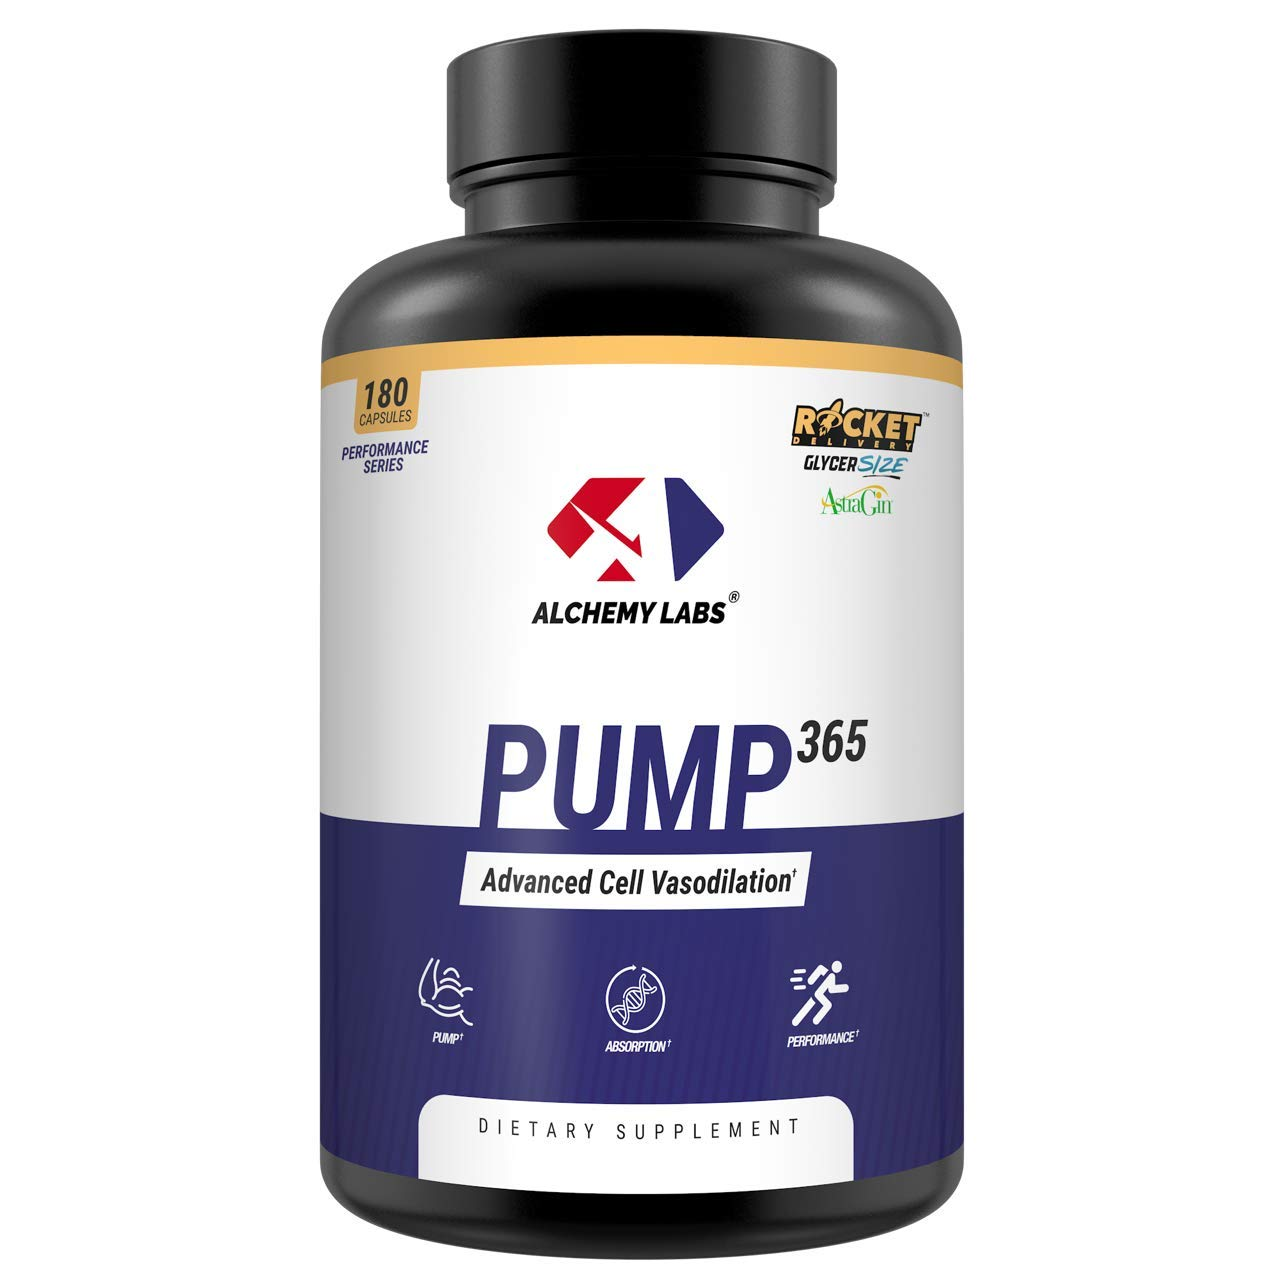 Alchemy Labs - Pump 365 - Nitric Oxide Booster - GlycerPump, GlycerSize, AstraGin, L Norvaline, Vanadyl Sulfate, Glycerol, Muscle Building, Pump Supplement, 180ct Pills